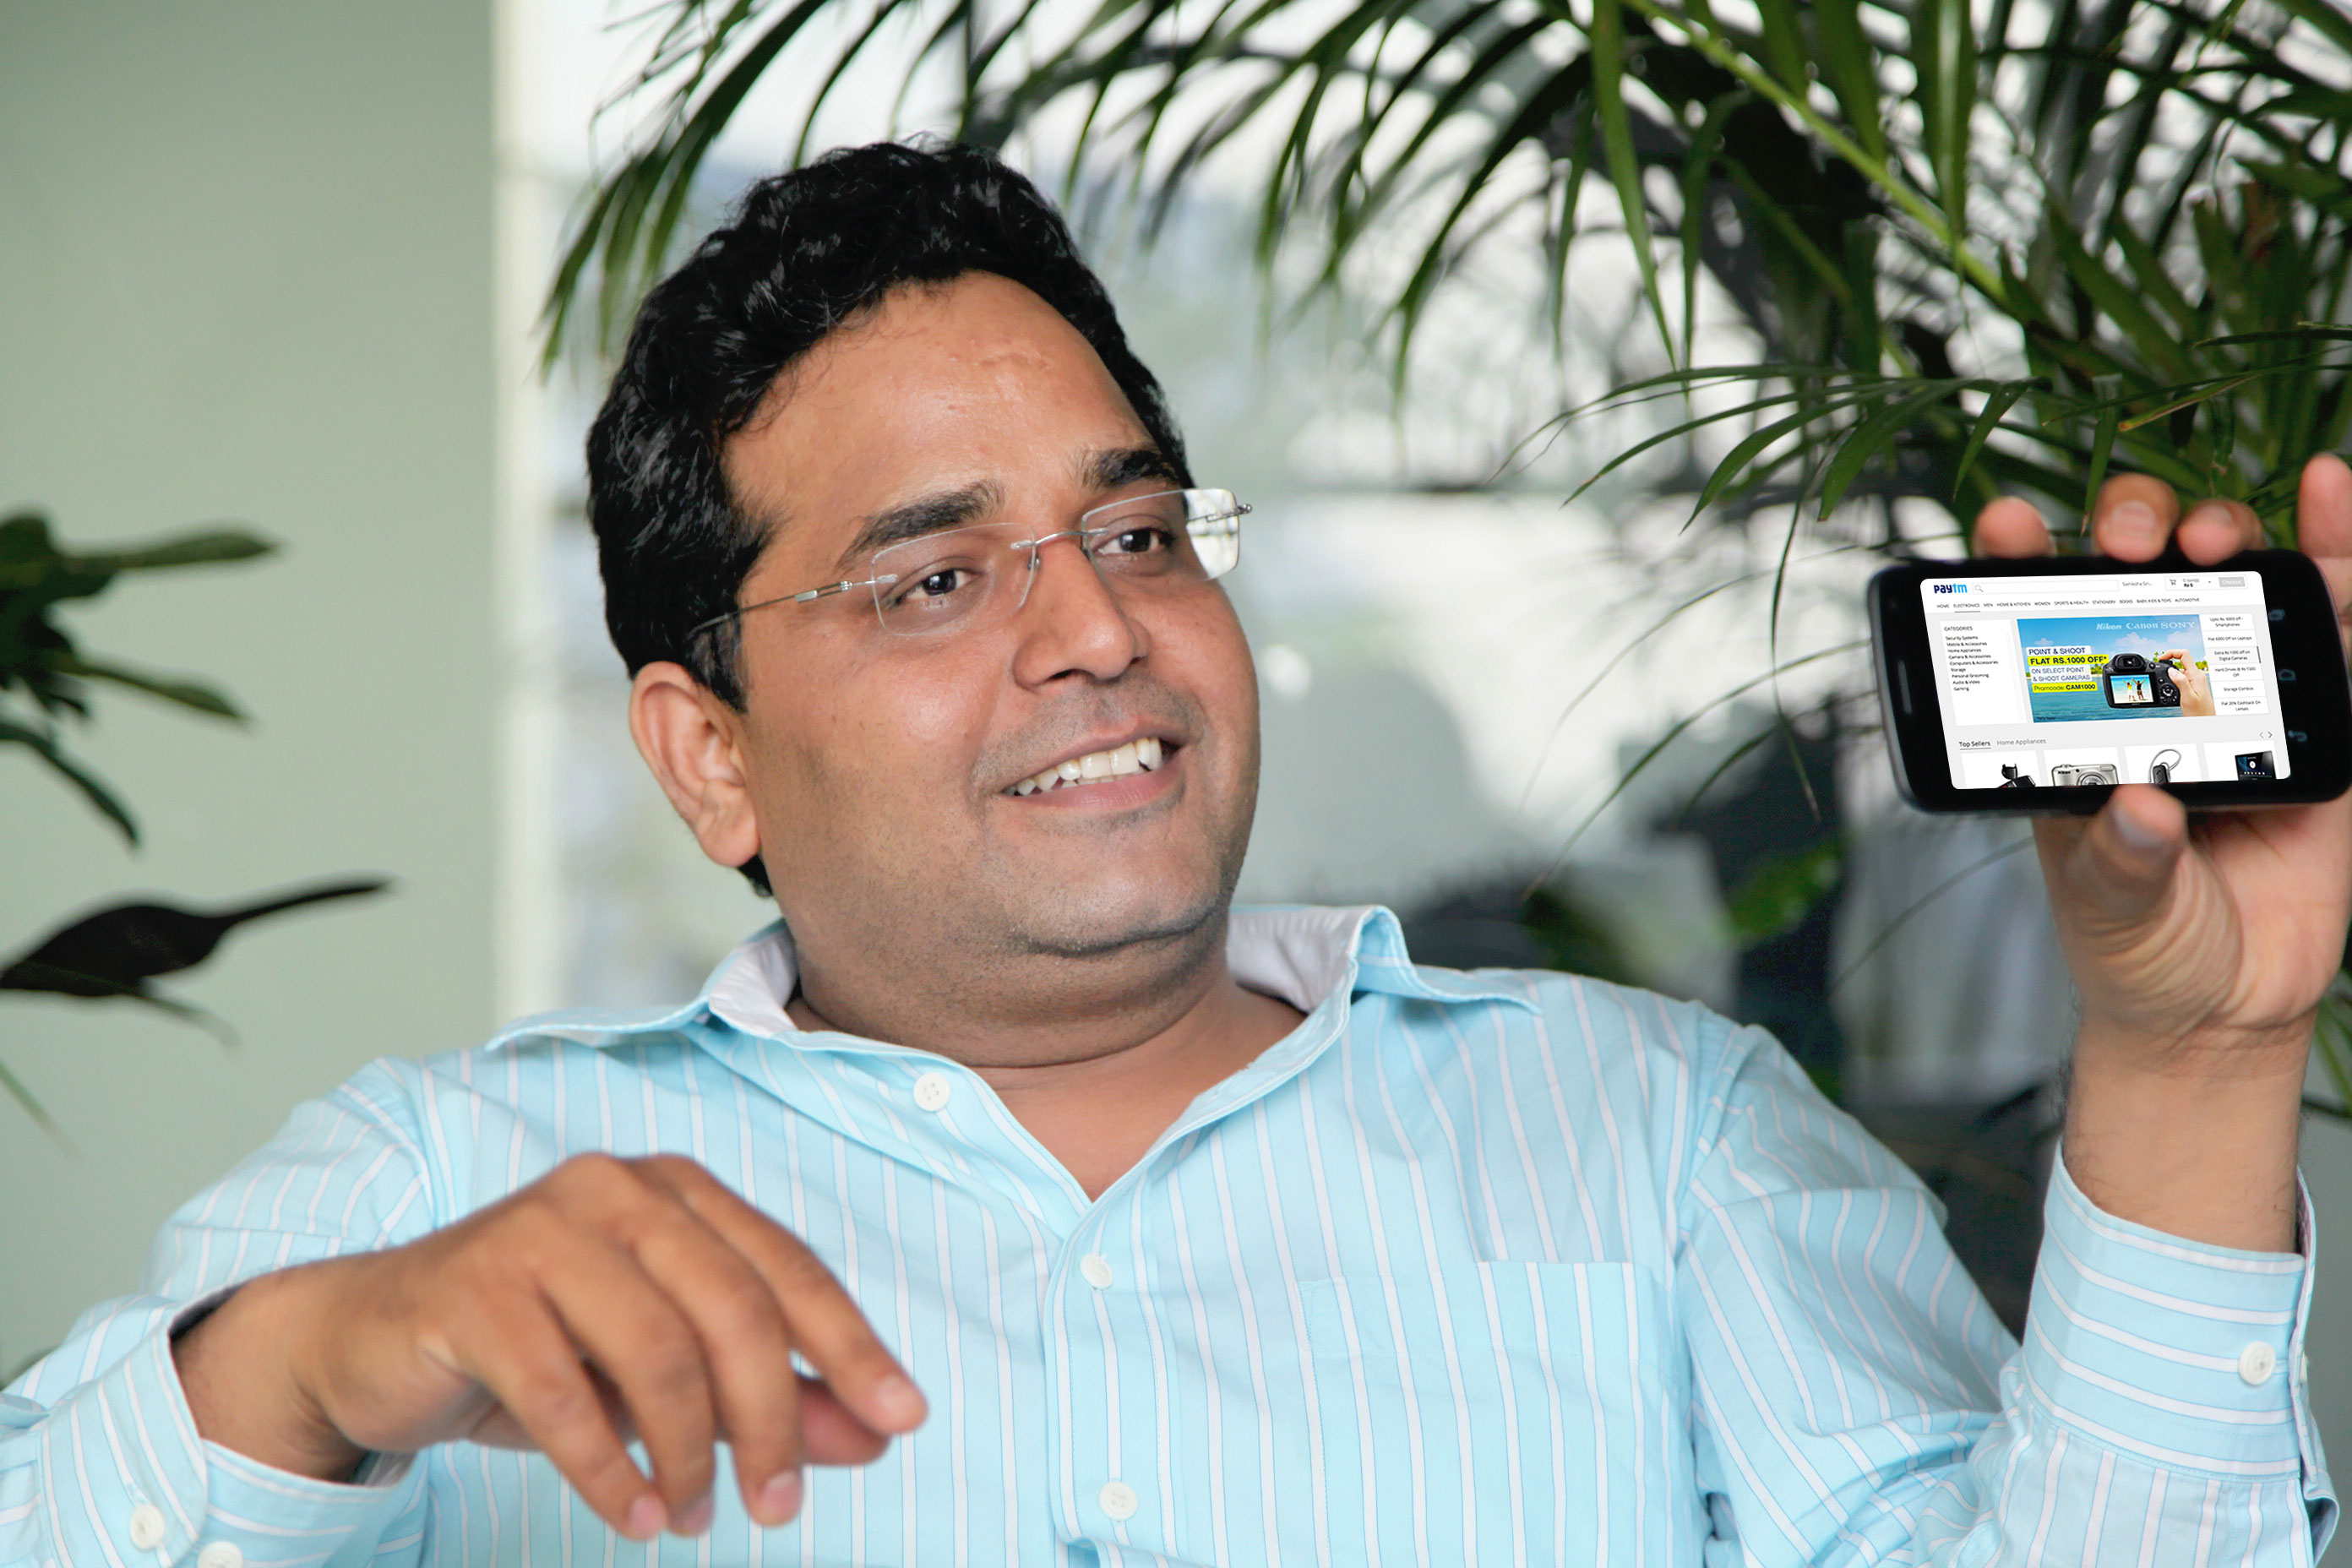 Paytm parent One97 raising $635M from Alibaba Group, SAIF; valued just over $2B